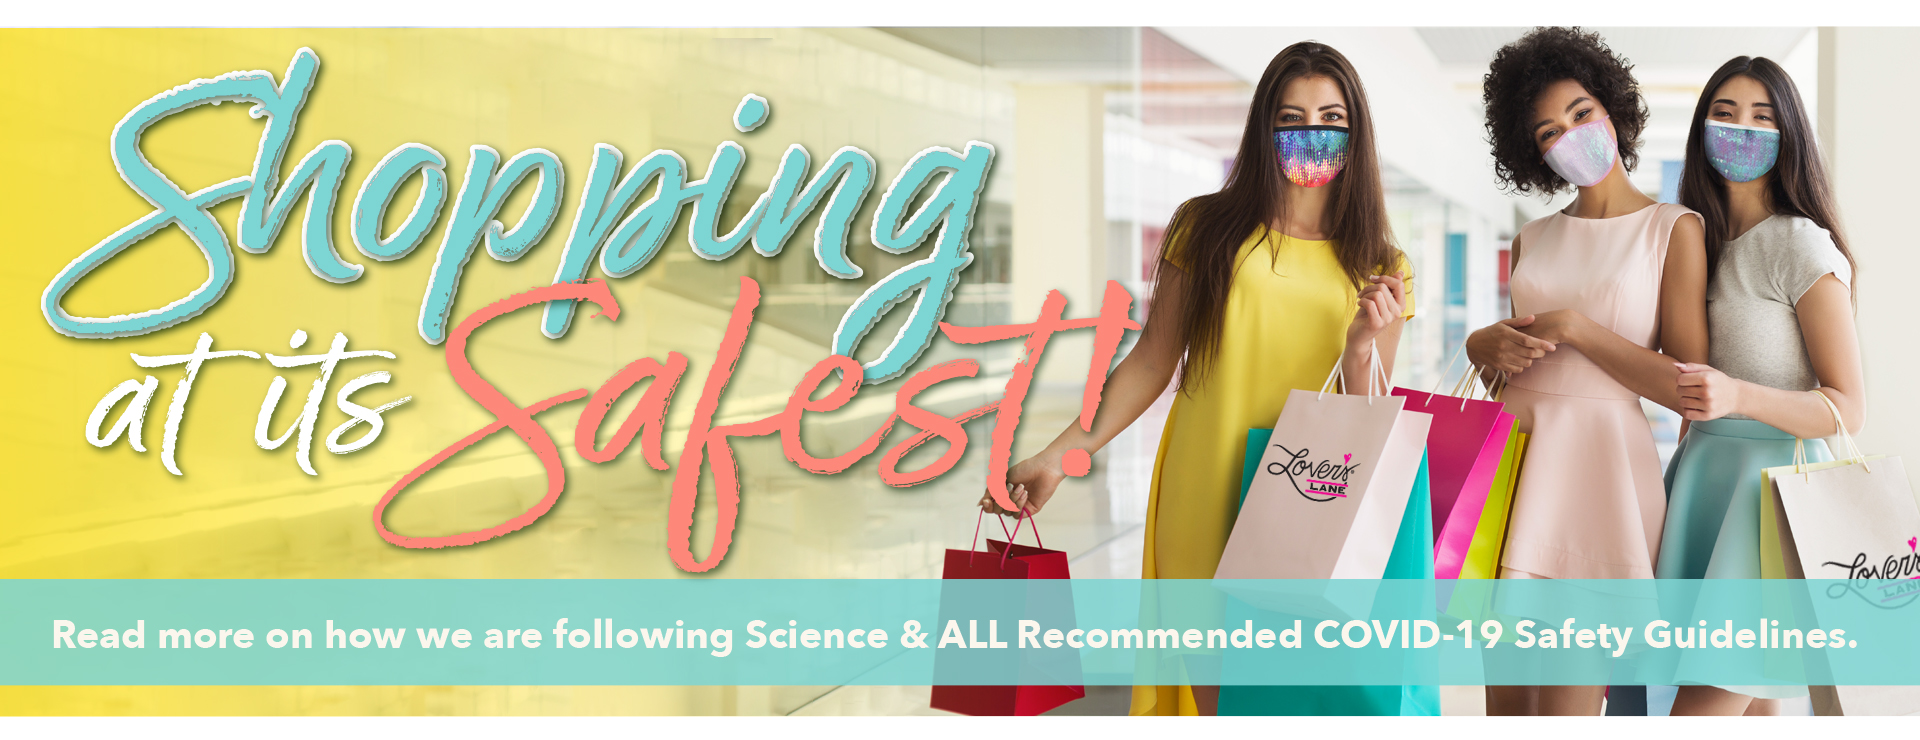 Shopping at it's Safest! - Read more on how we are following Science & ALL Recommended COVID-19 Safety Guidelines.